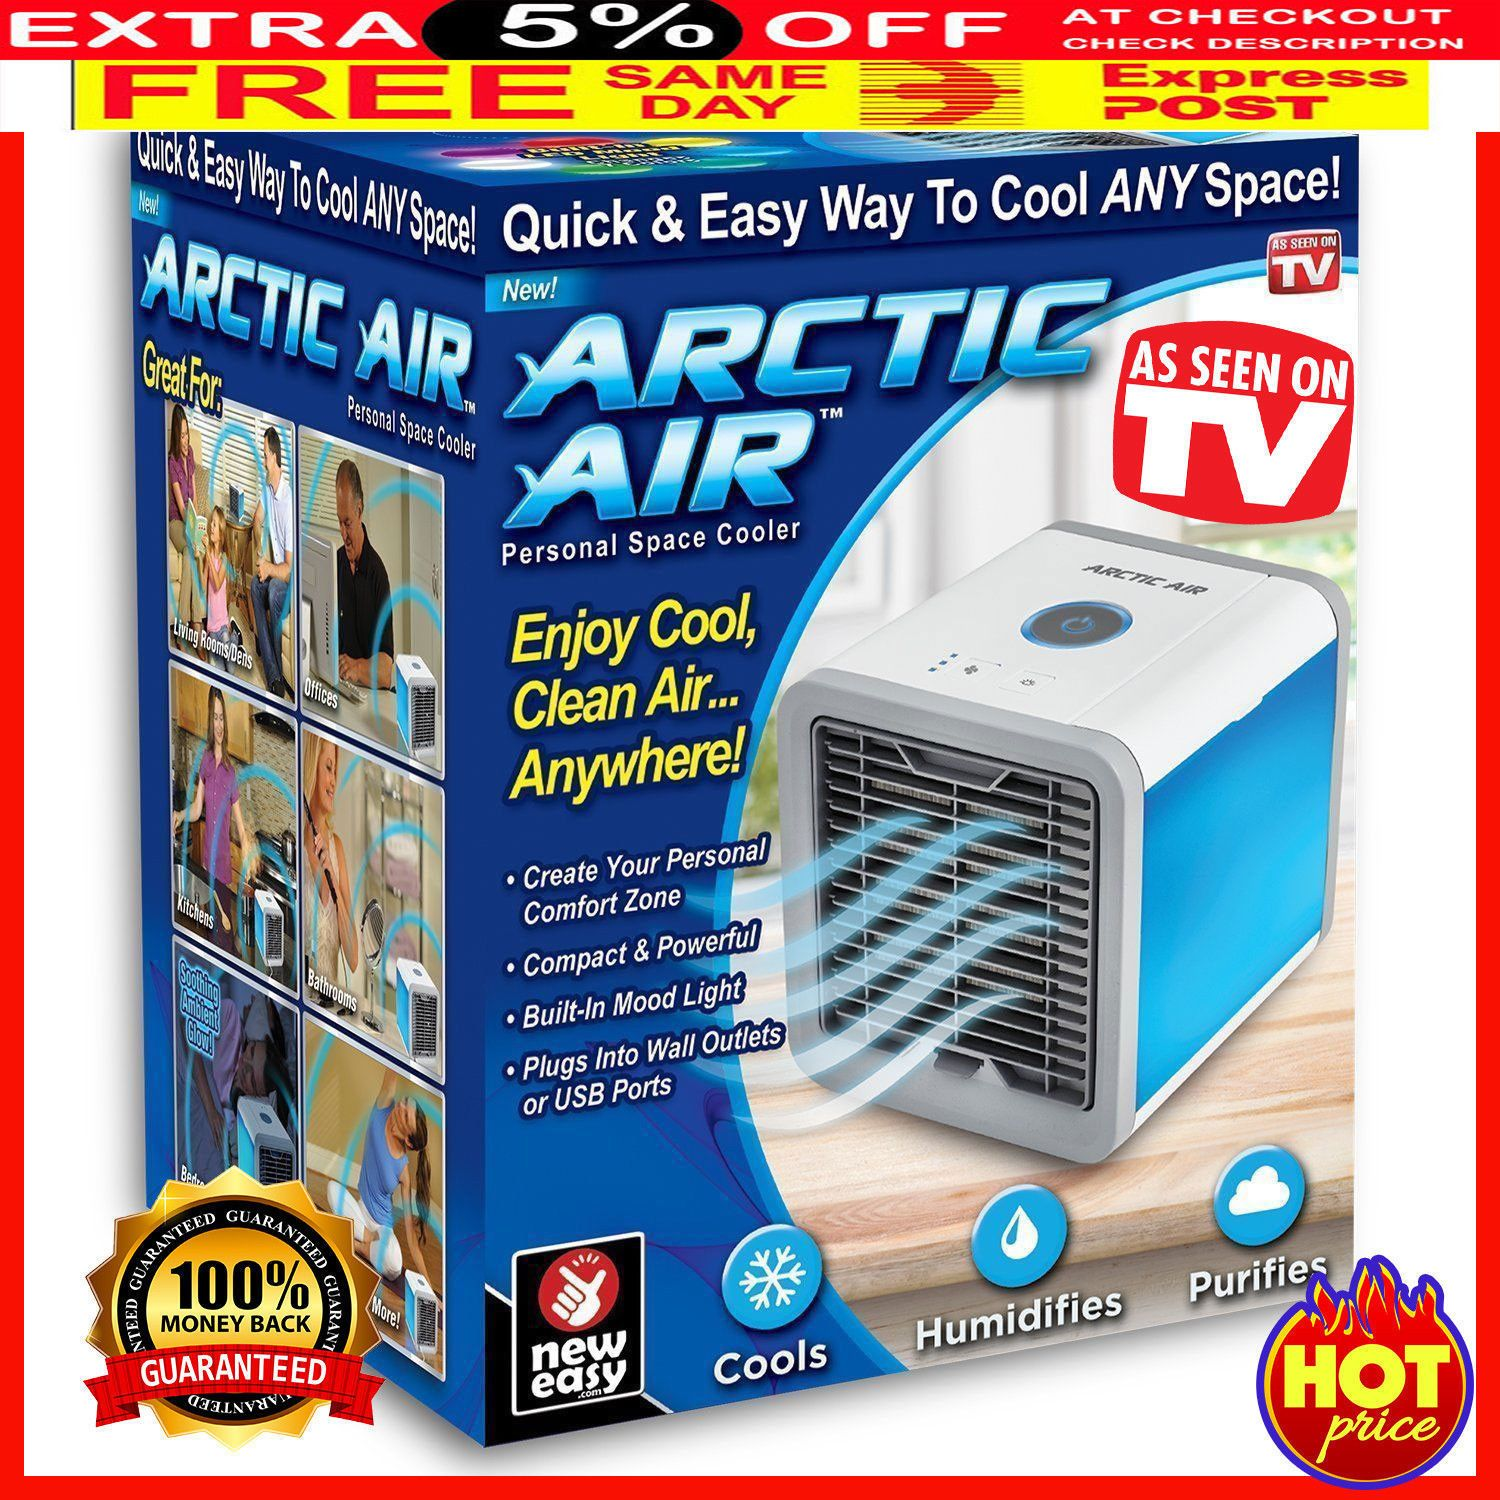 Artic Air Personal Space Air Cooler Quick Easy Way To Cool Air Conditioner Cool Stuff Air Cooler Artic Air